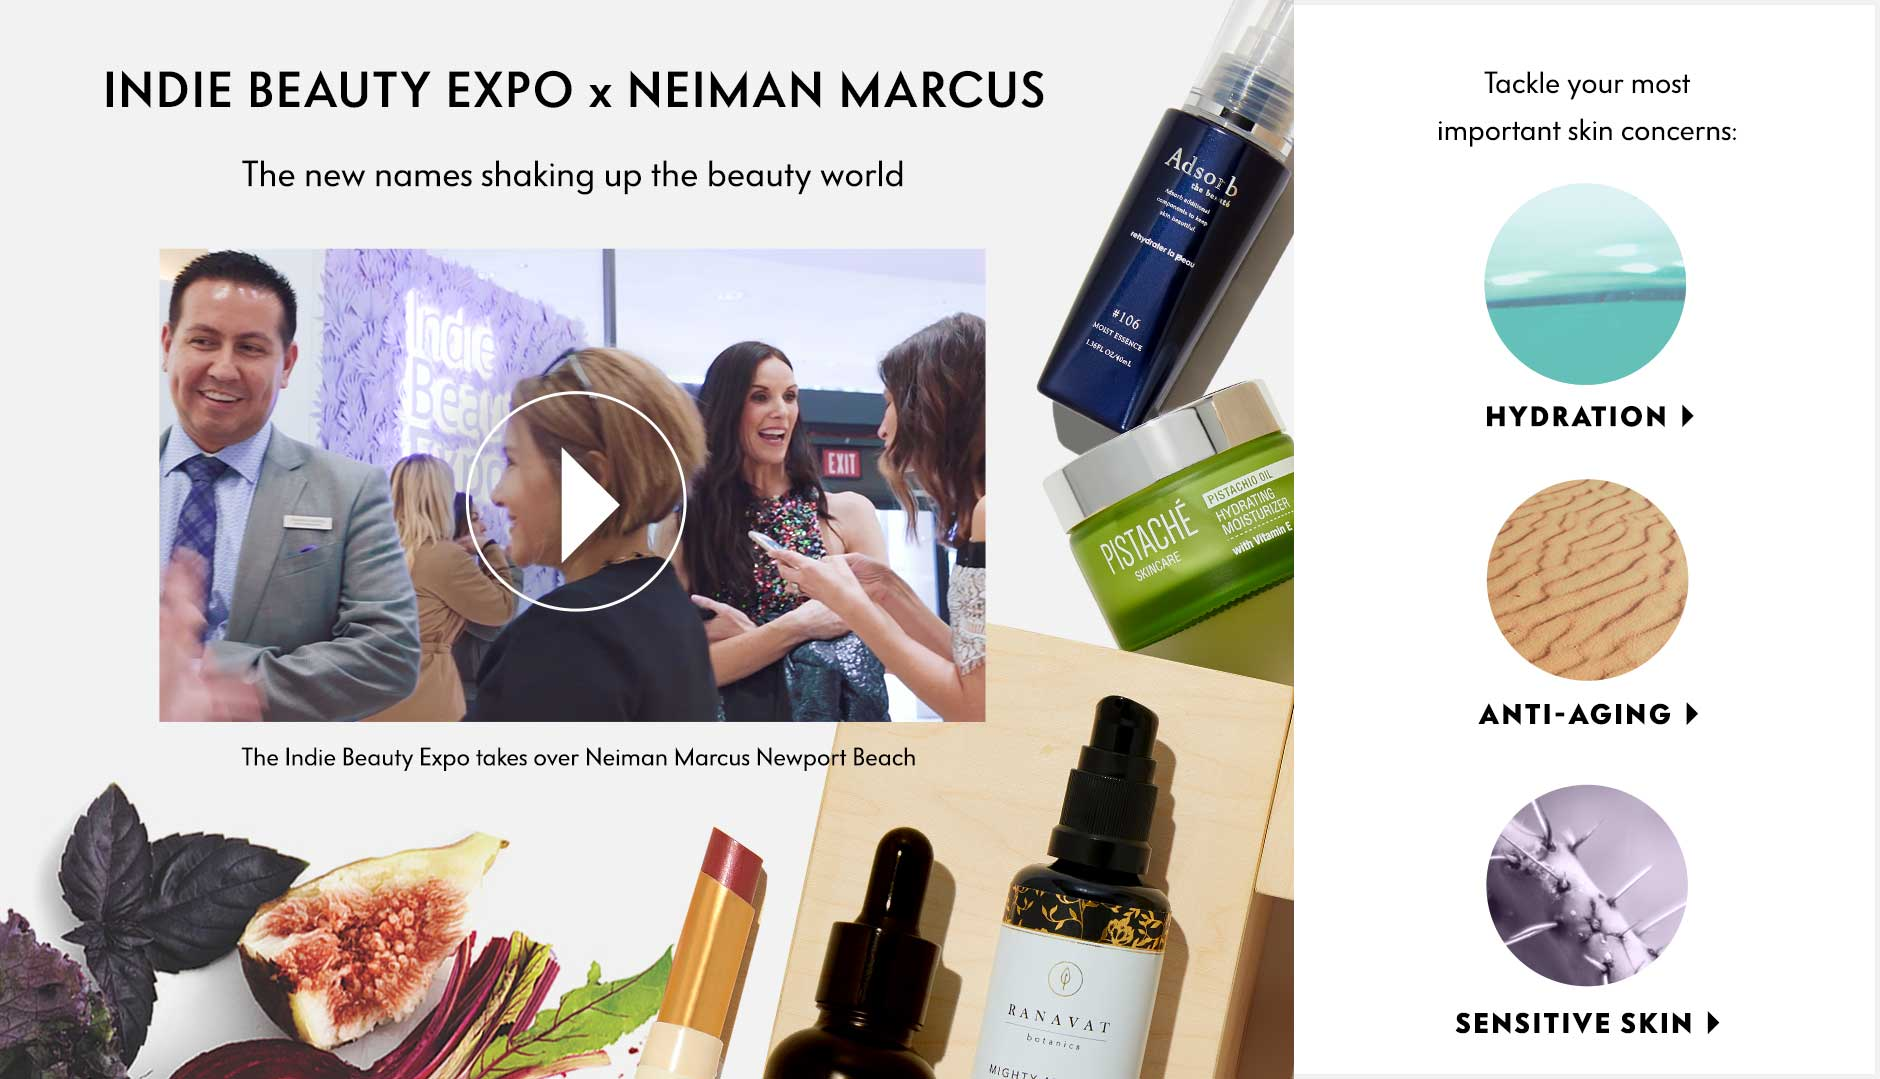 Indie Beauty Expo x Neiman Marcus - The new names shaking up the beauty world